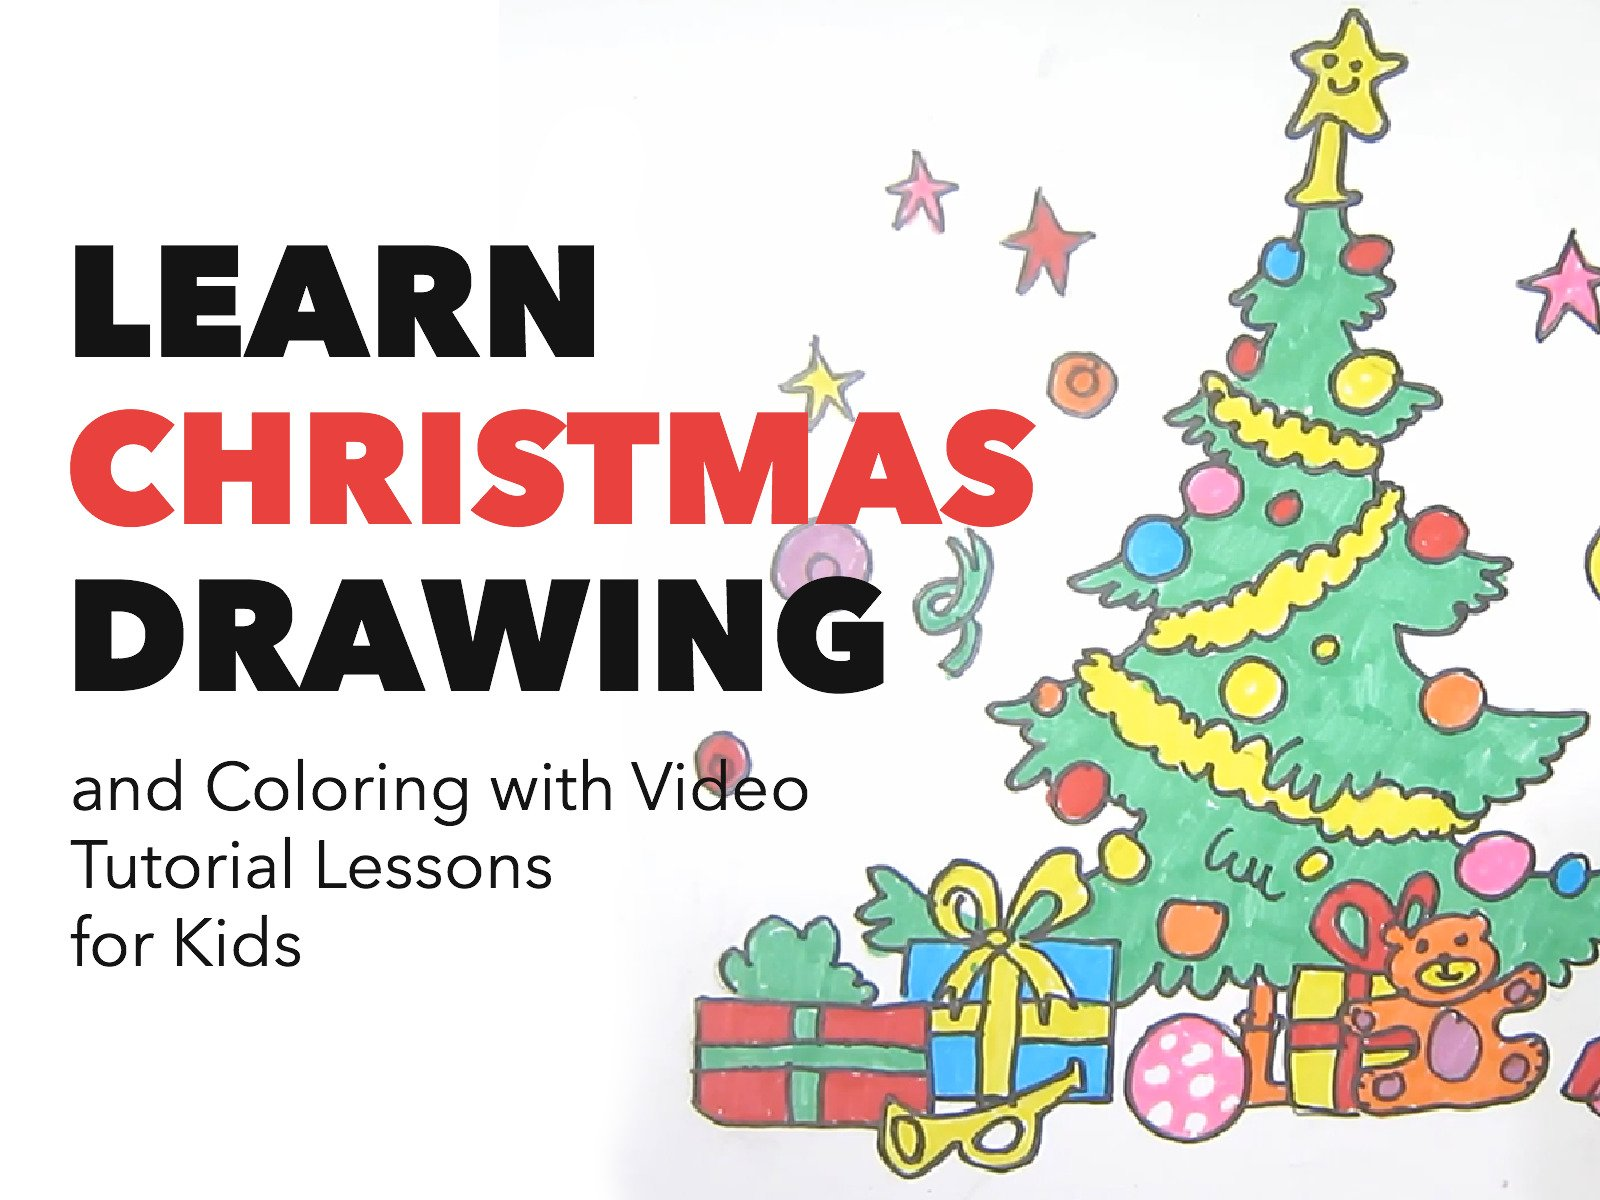 Learn Christmas Drawing and Coloring with Video Tutorial Lessons - Season 1